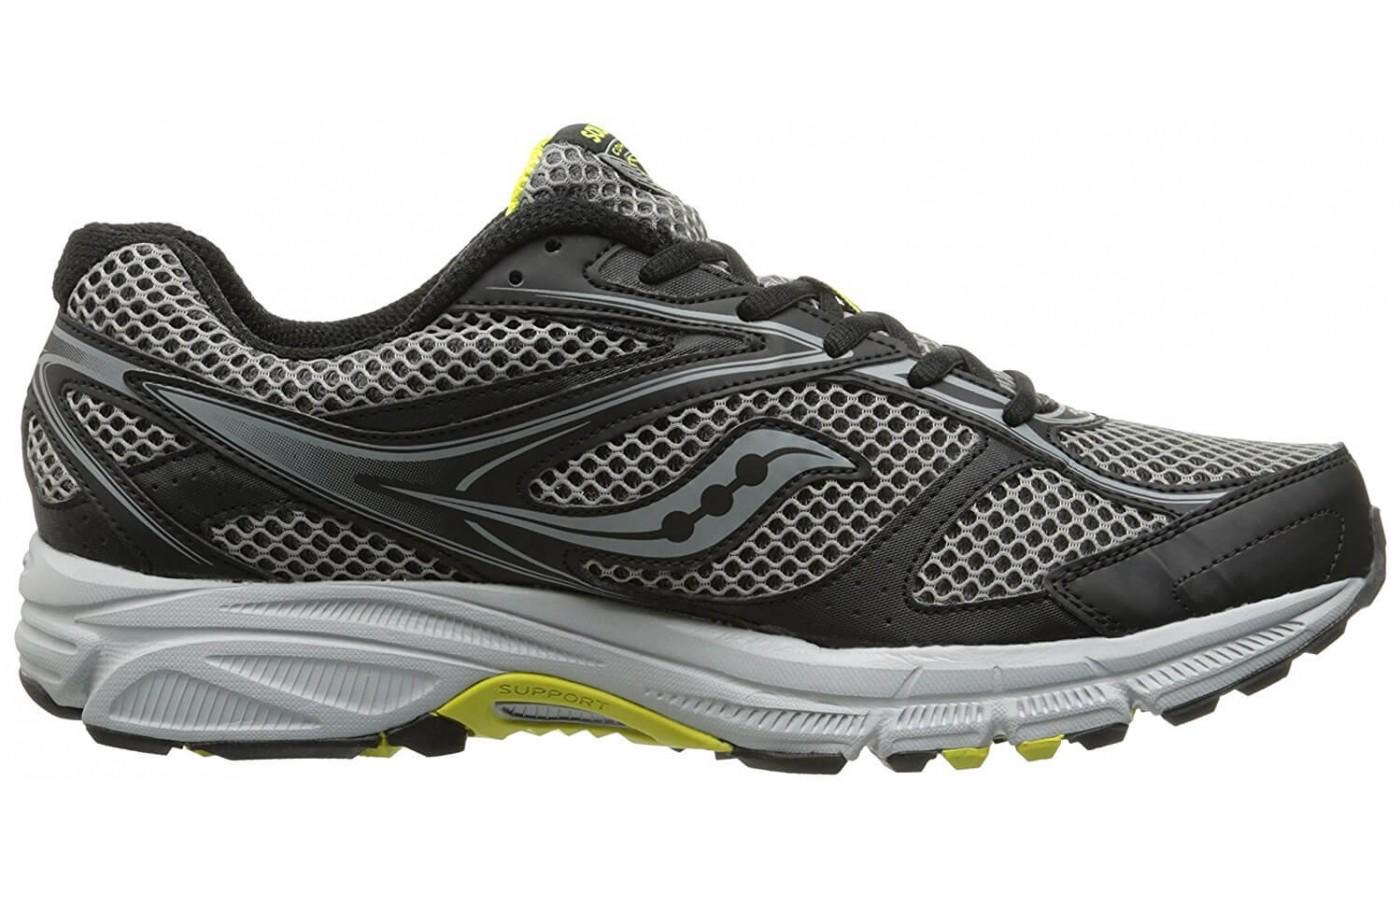 a good look at the side of the Saucony Cohesion TR 8